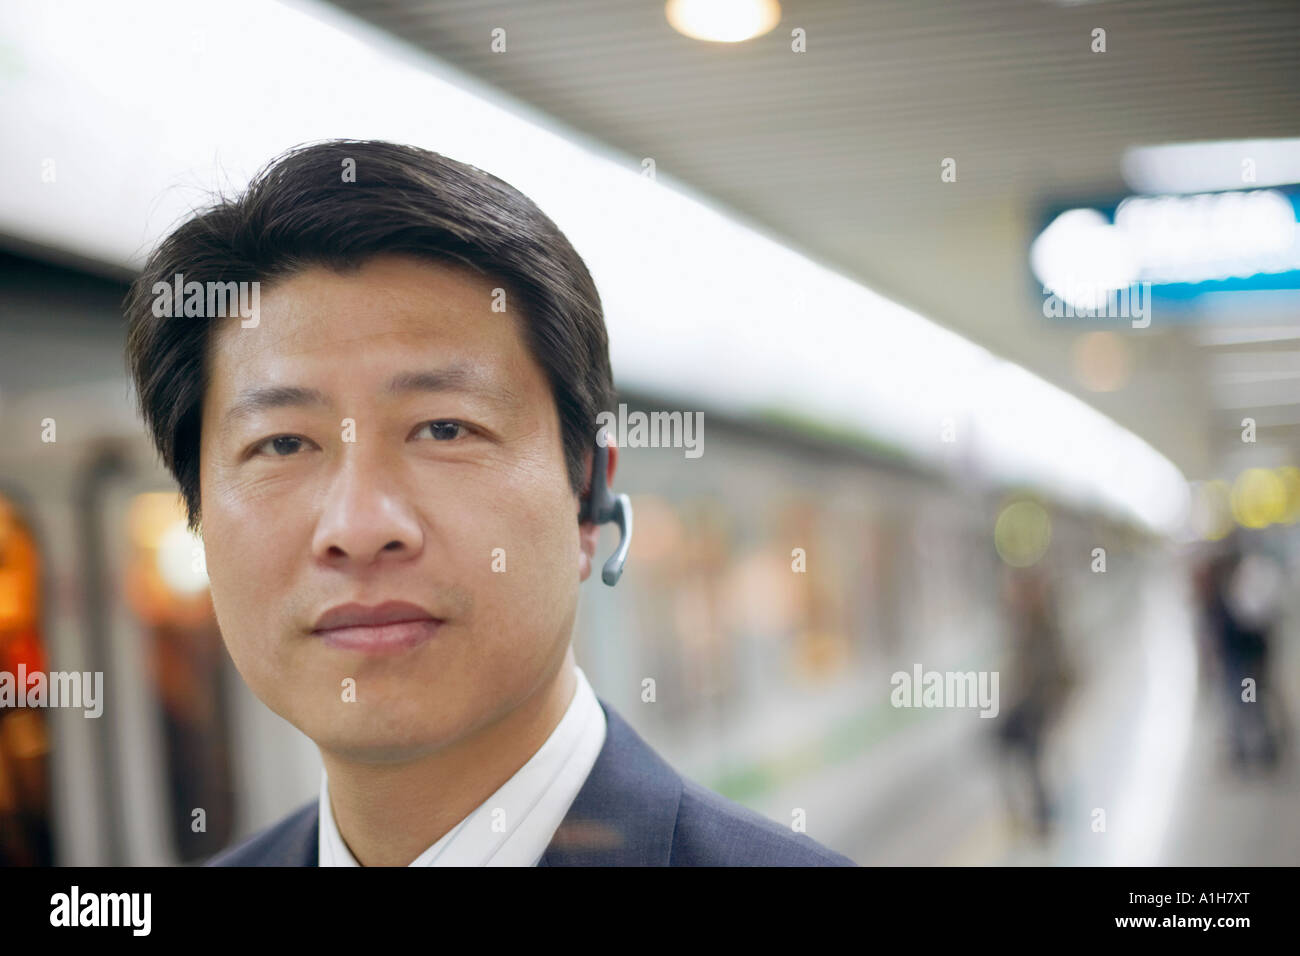 Portrait of a businessman wearing a hands free device at a subway station - Stock Image